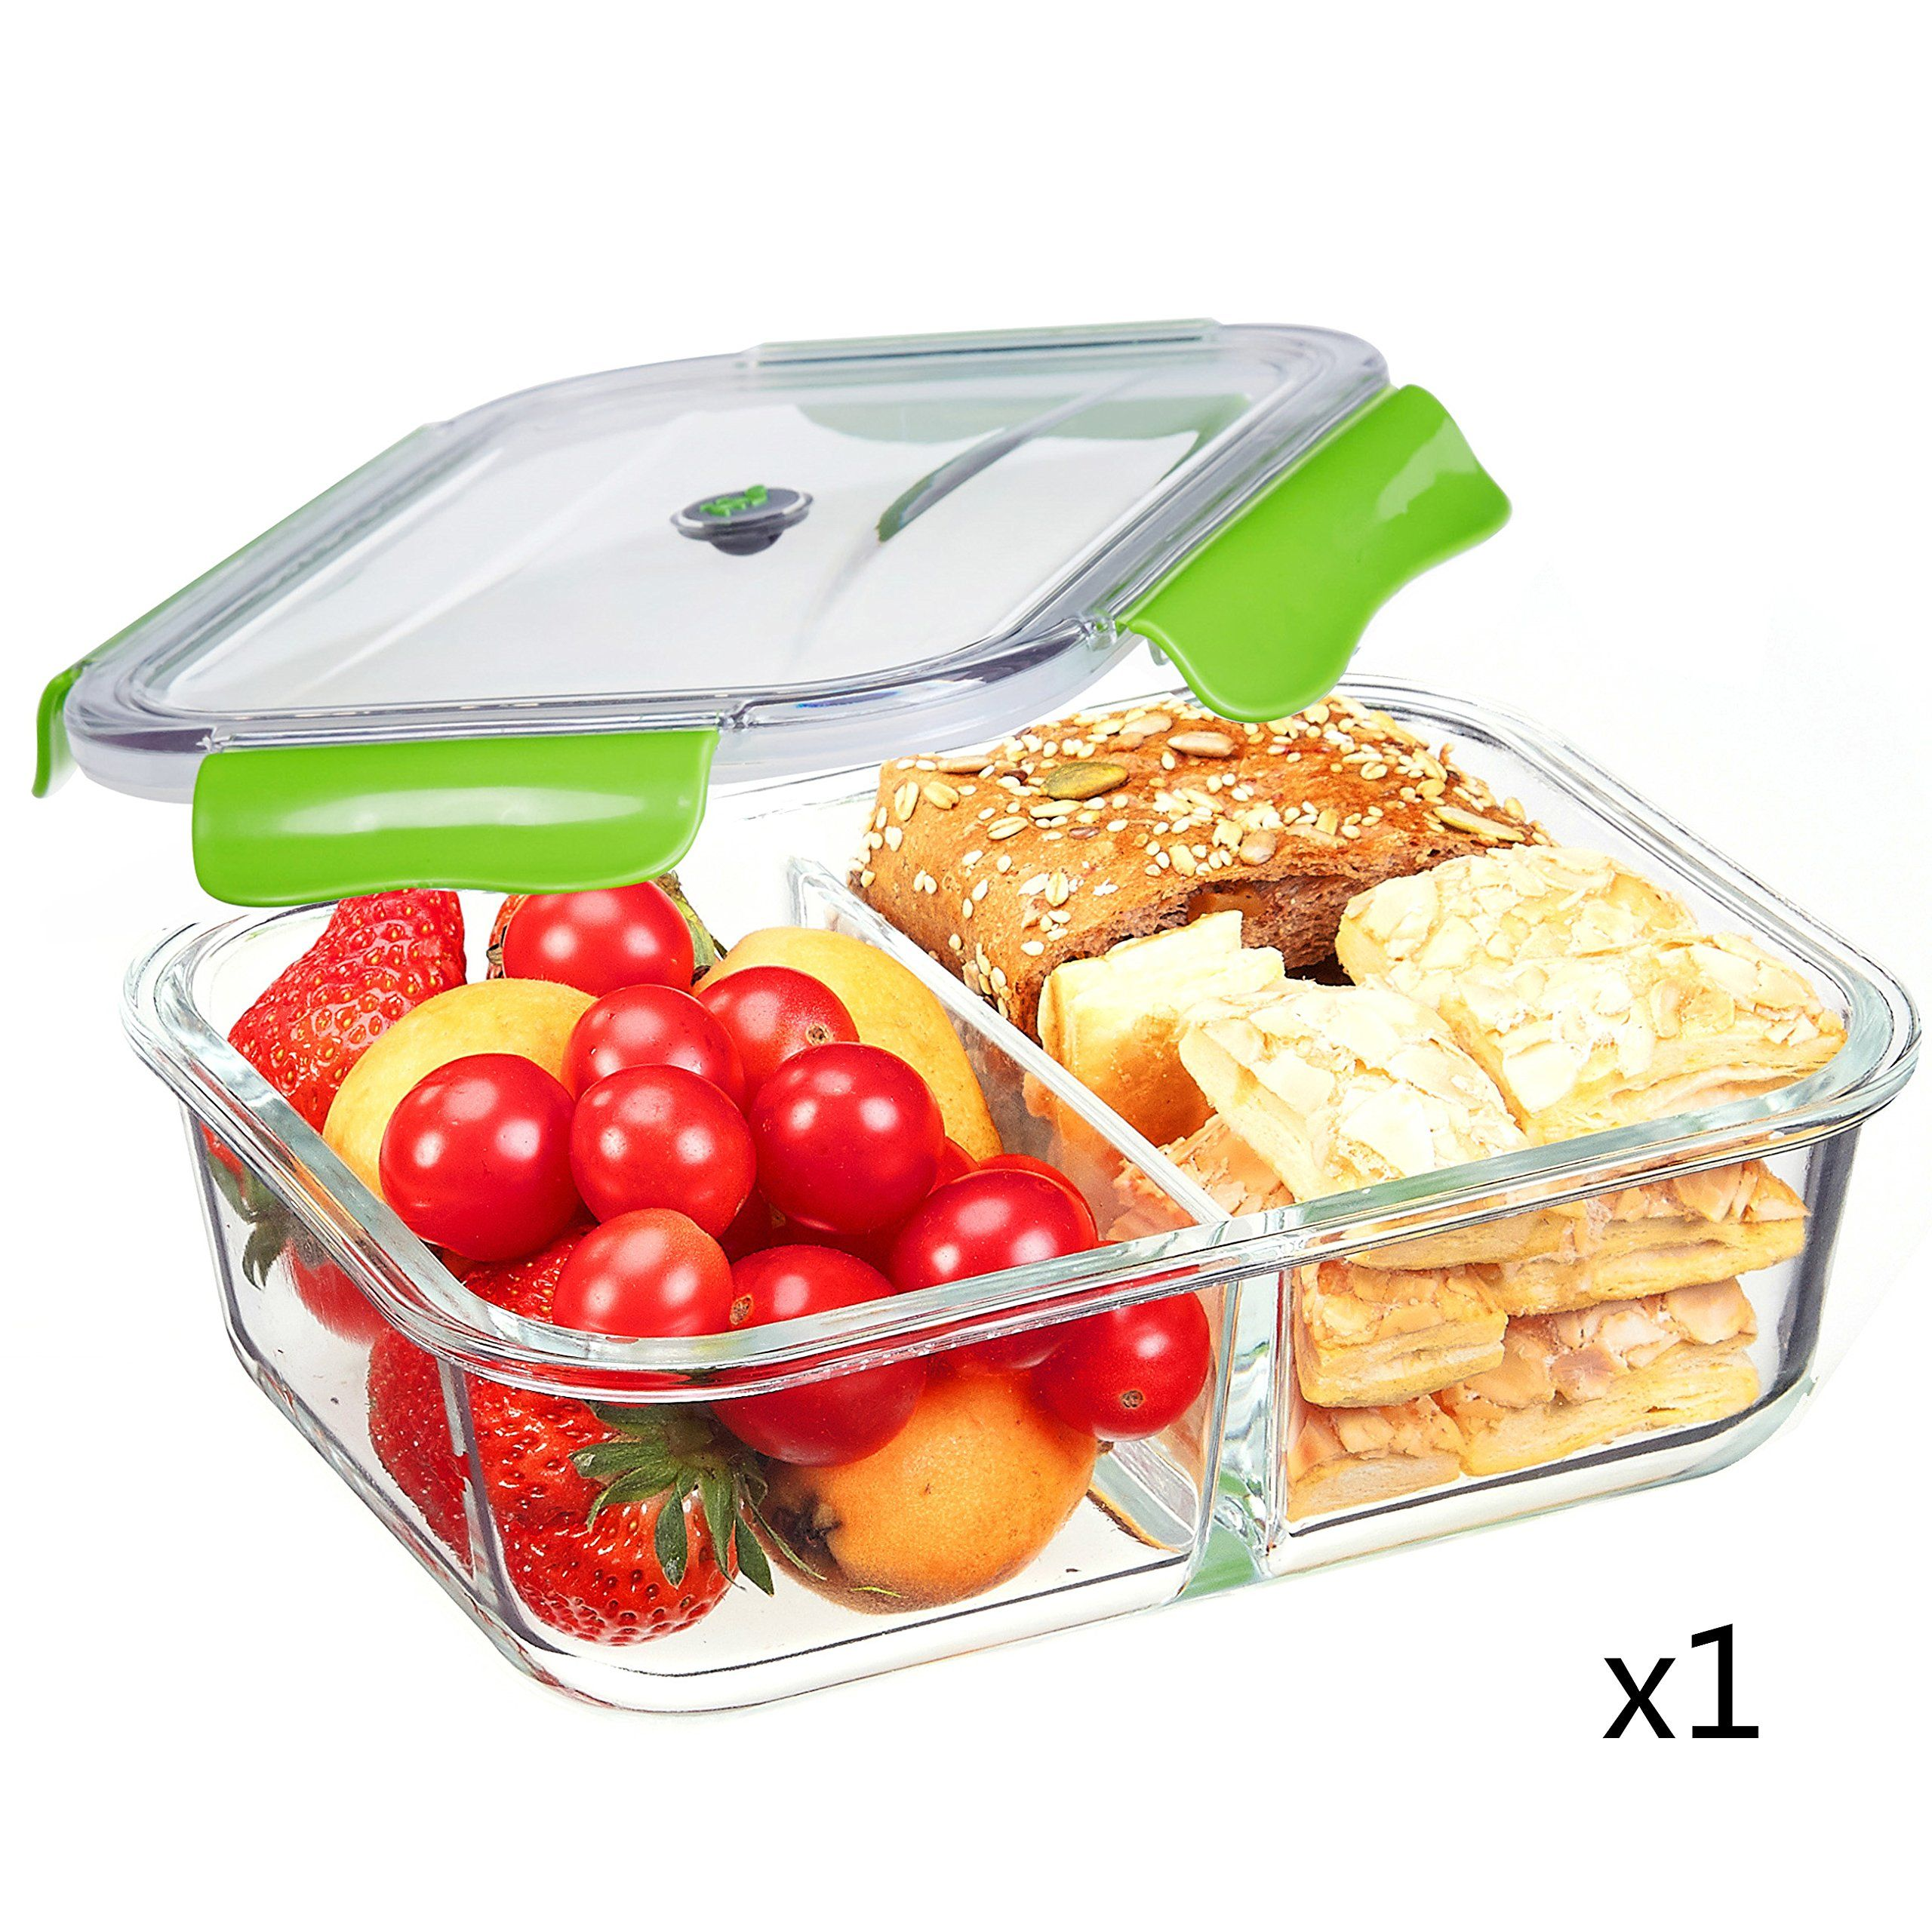 SELEWARE Food Containers Glass Microwaveable with Dividers